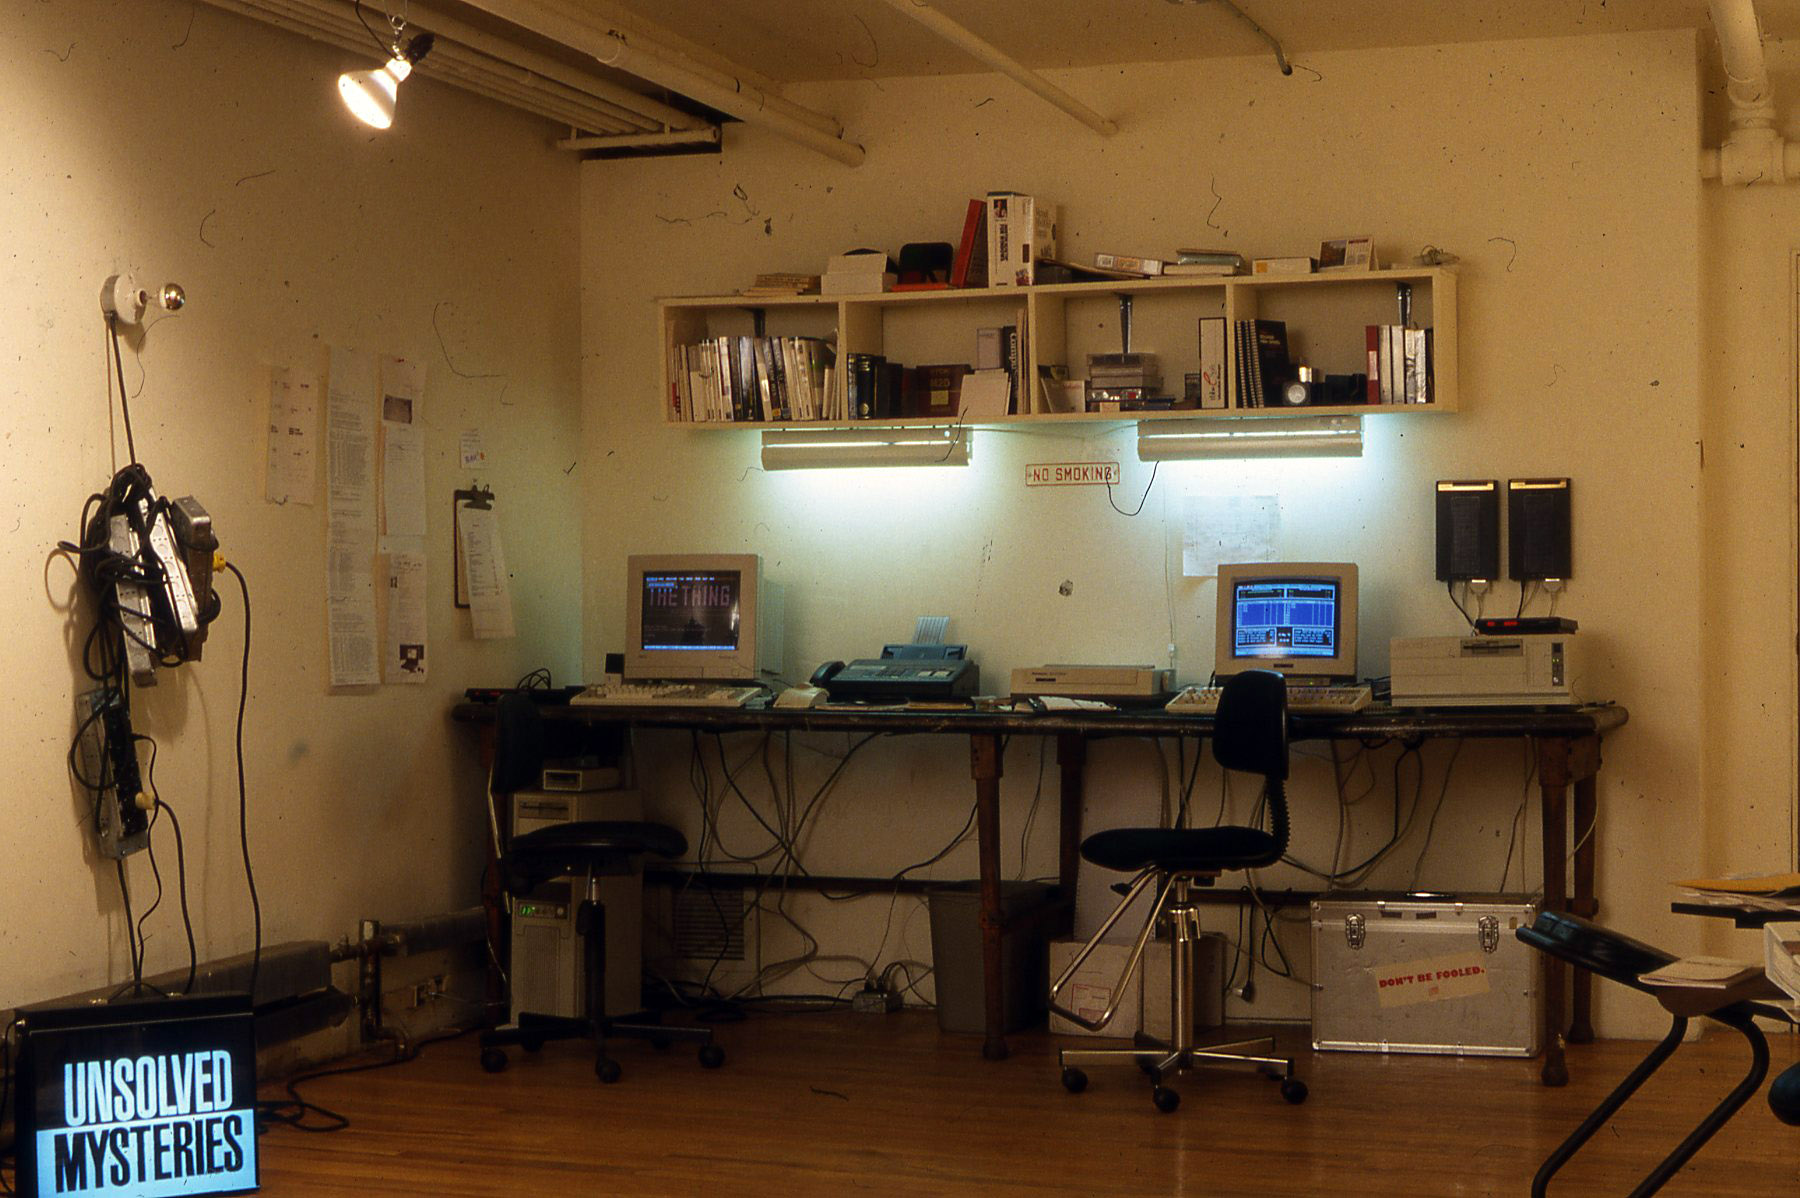 an open office area featuring a desk and two computers from the 1990s